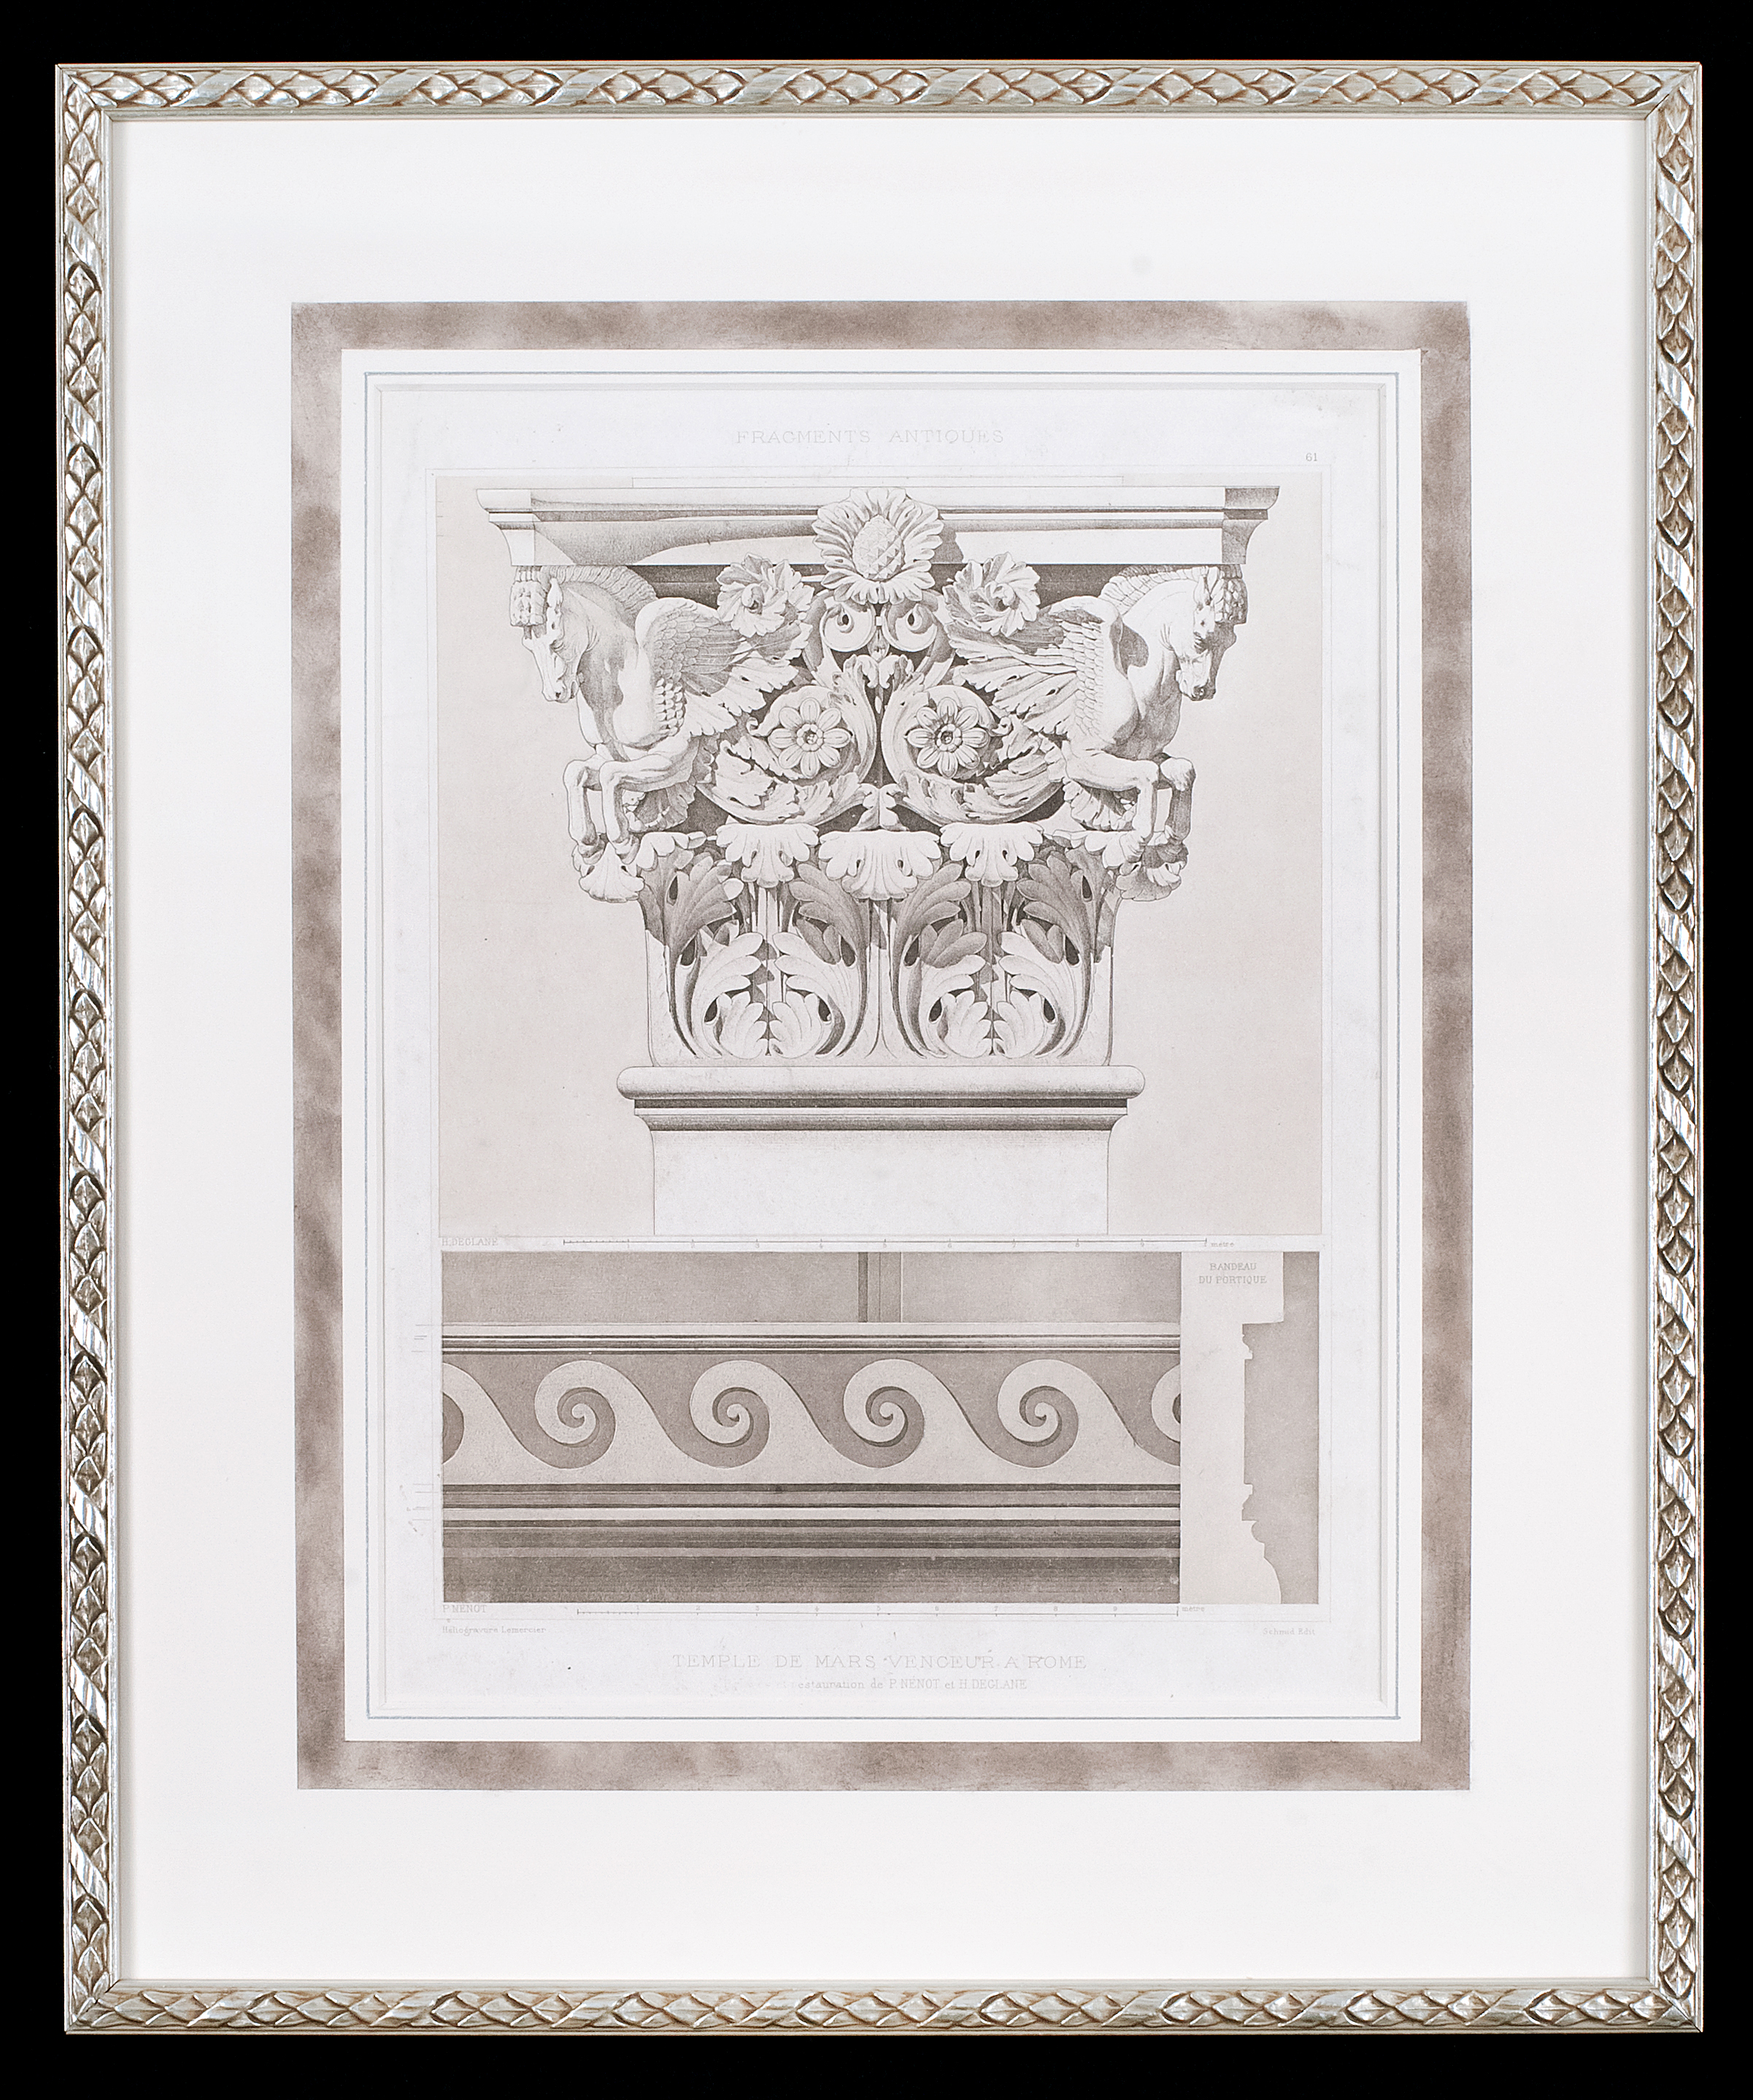 This antique architectural design print is hinge mounted to a rag mat that has been hand painted with a decorative panel. Museum glass both protects the print from ultra violet light and is anti- reflective allowing for clear viewing. The frame is silver with an antique pattern.   Photo Credit: Elizabeth LaJeunesse  .